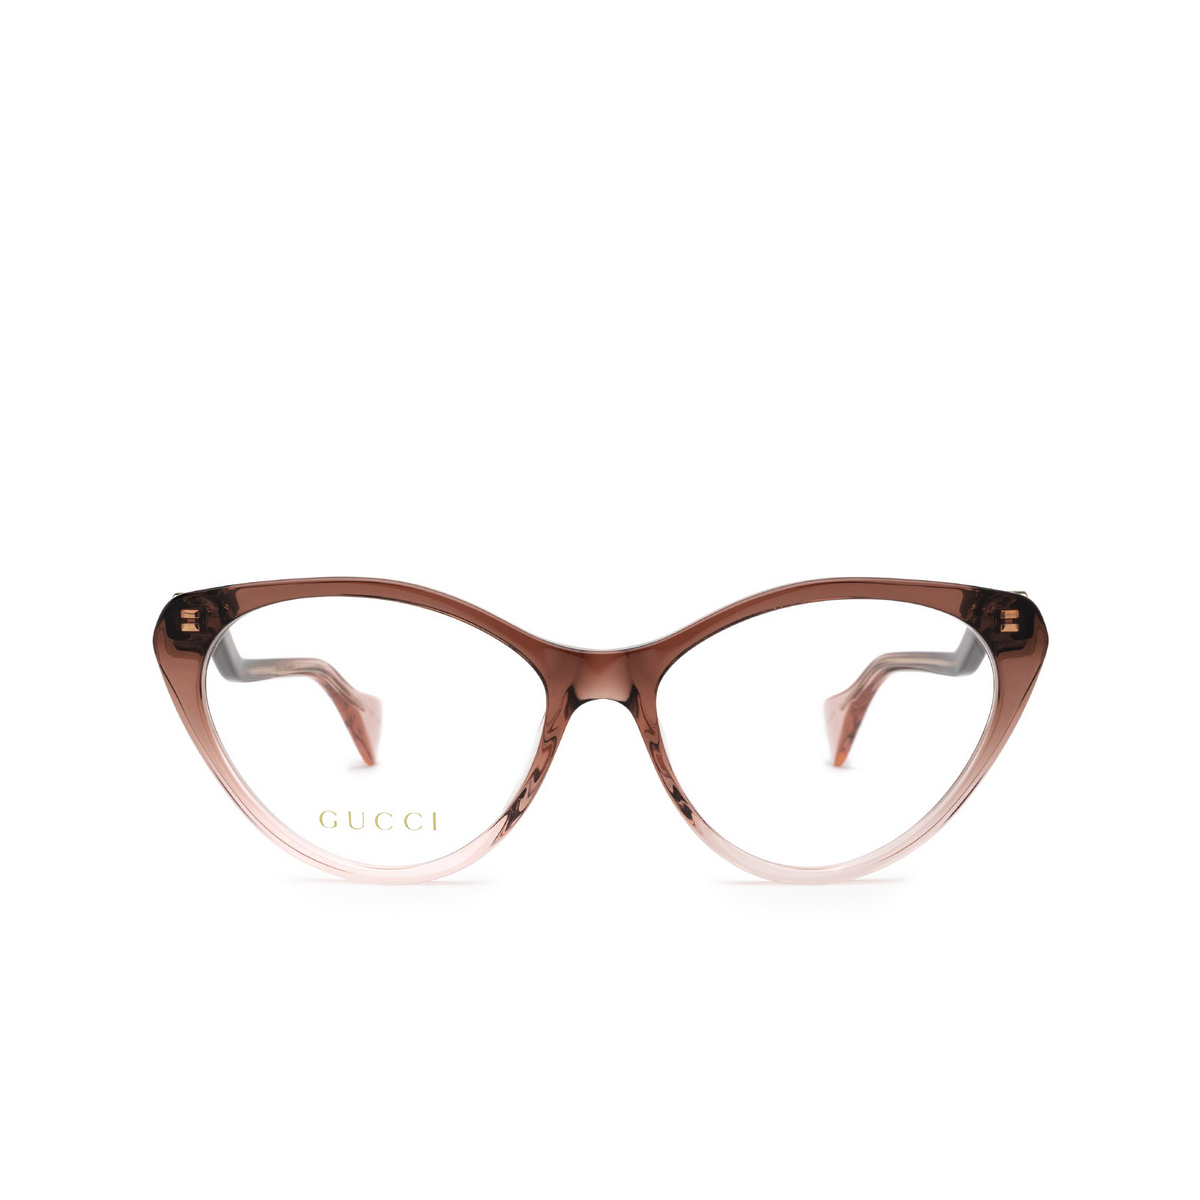 Gucci® Cat-eye Eyeglasses: GG1013O color Burgundy & Pink 003 - front view.